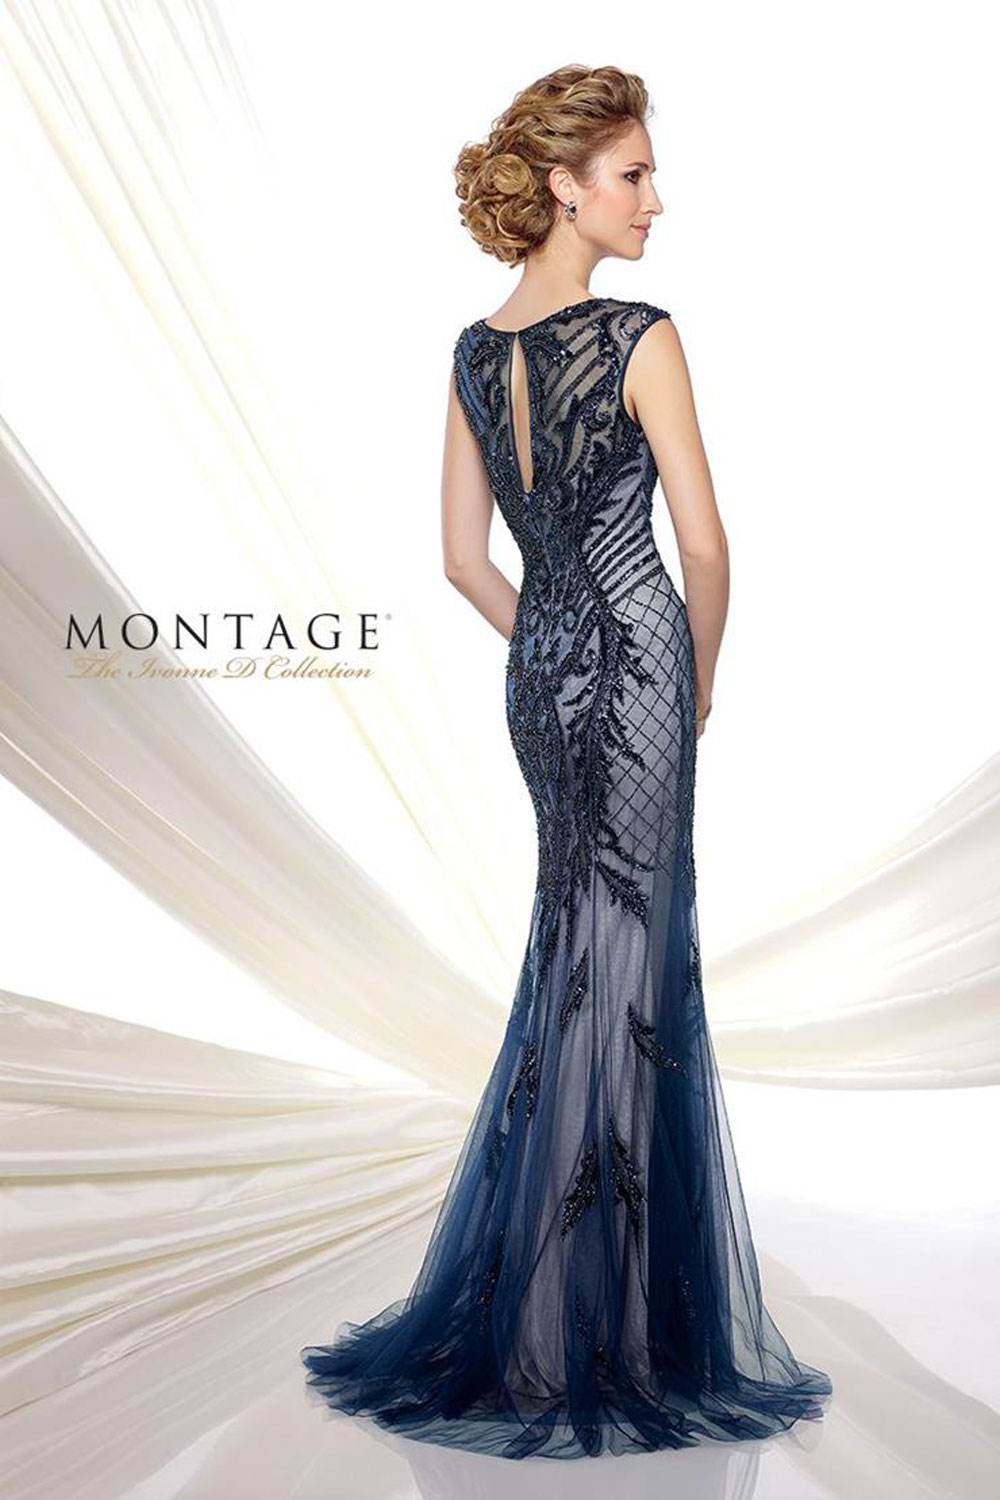 Evening gown with three-quarter sleeves& bateau neckline.